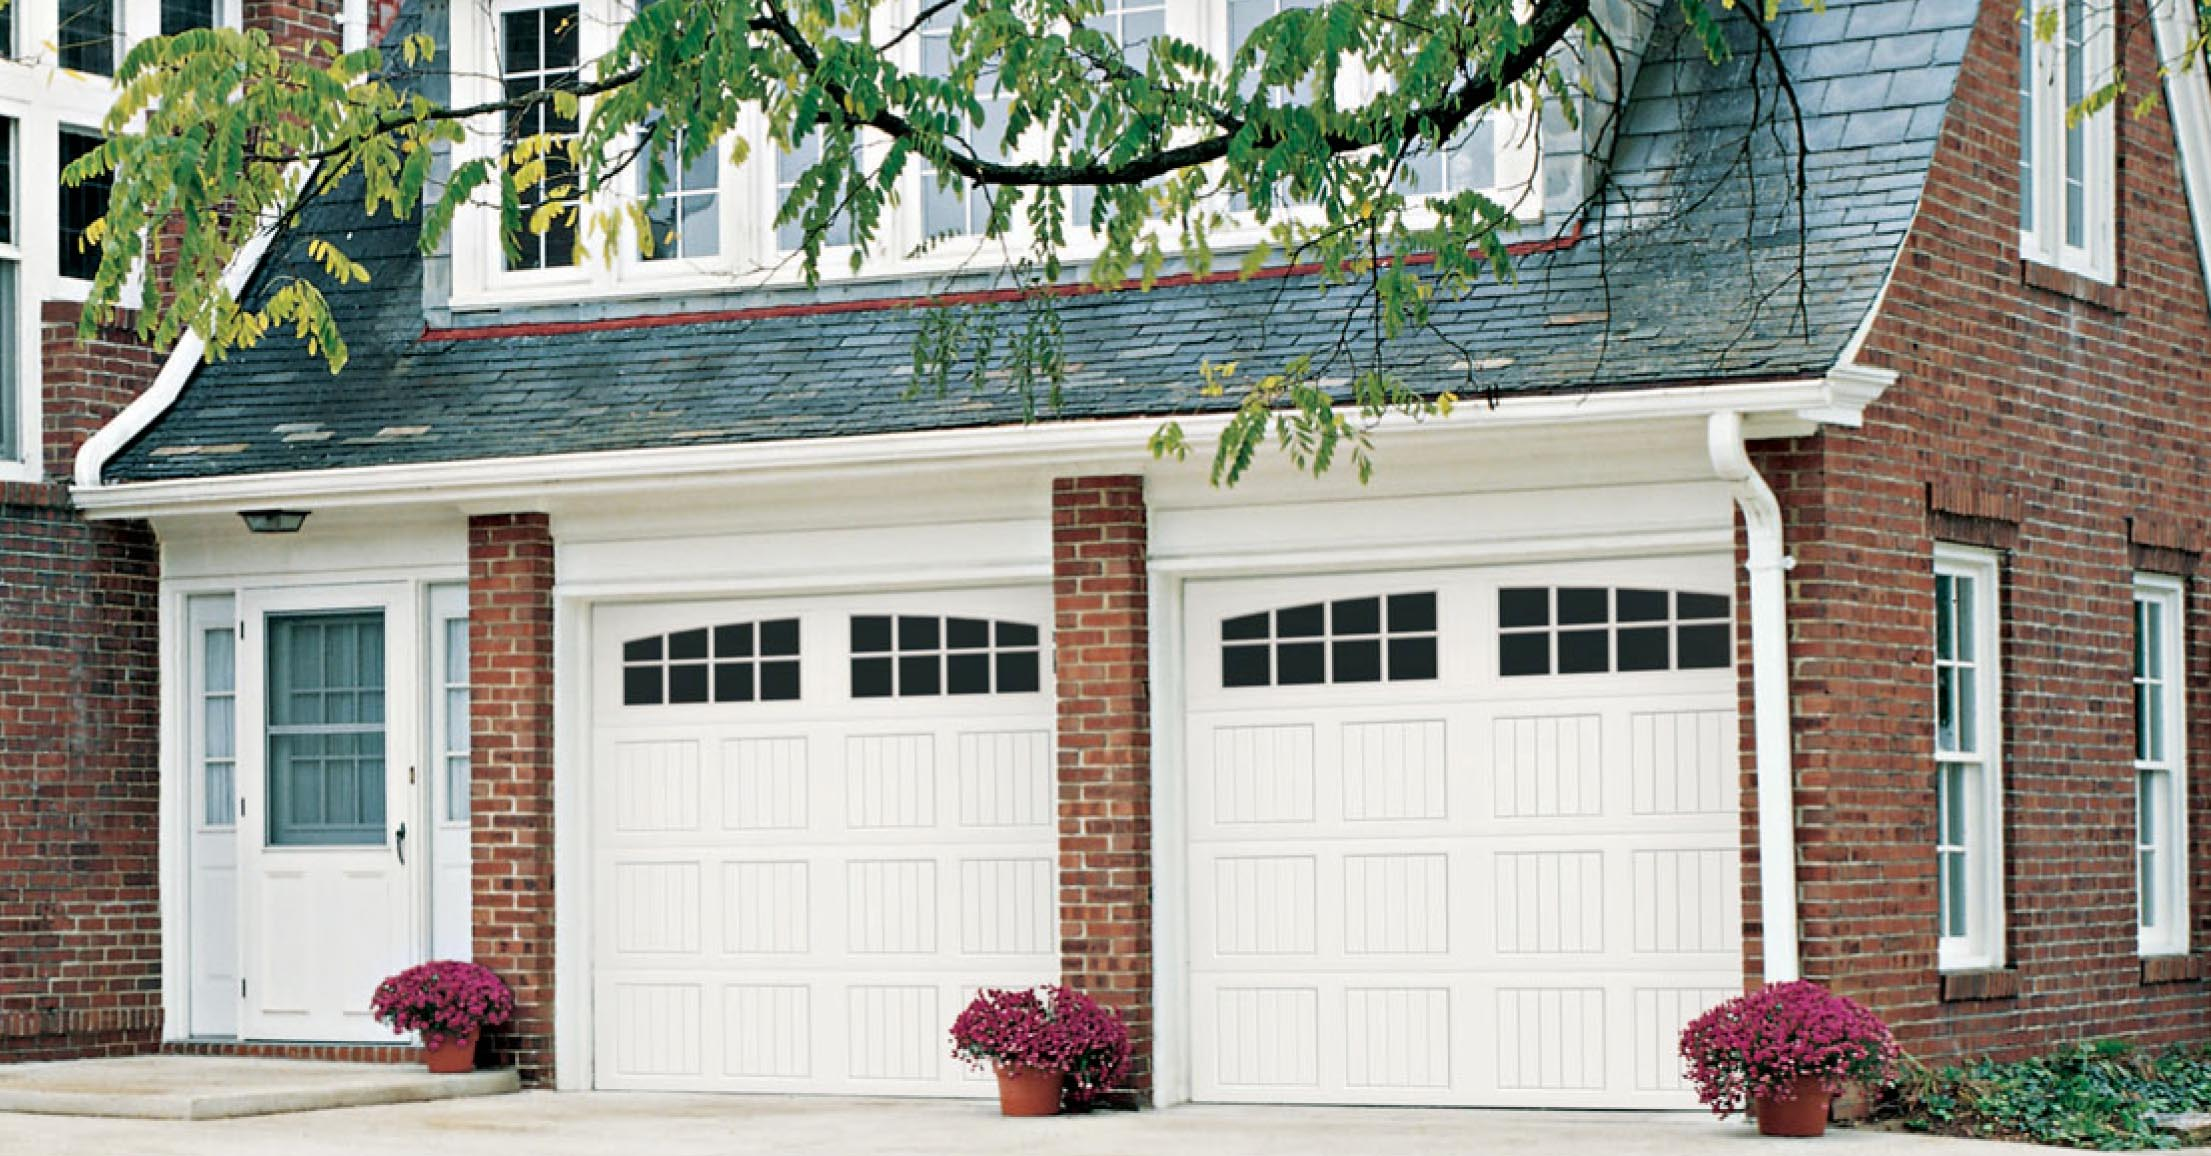 Brick home with white new garage doors